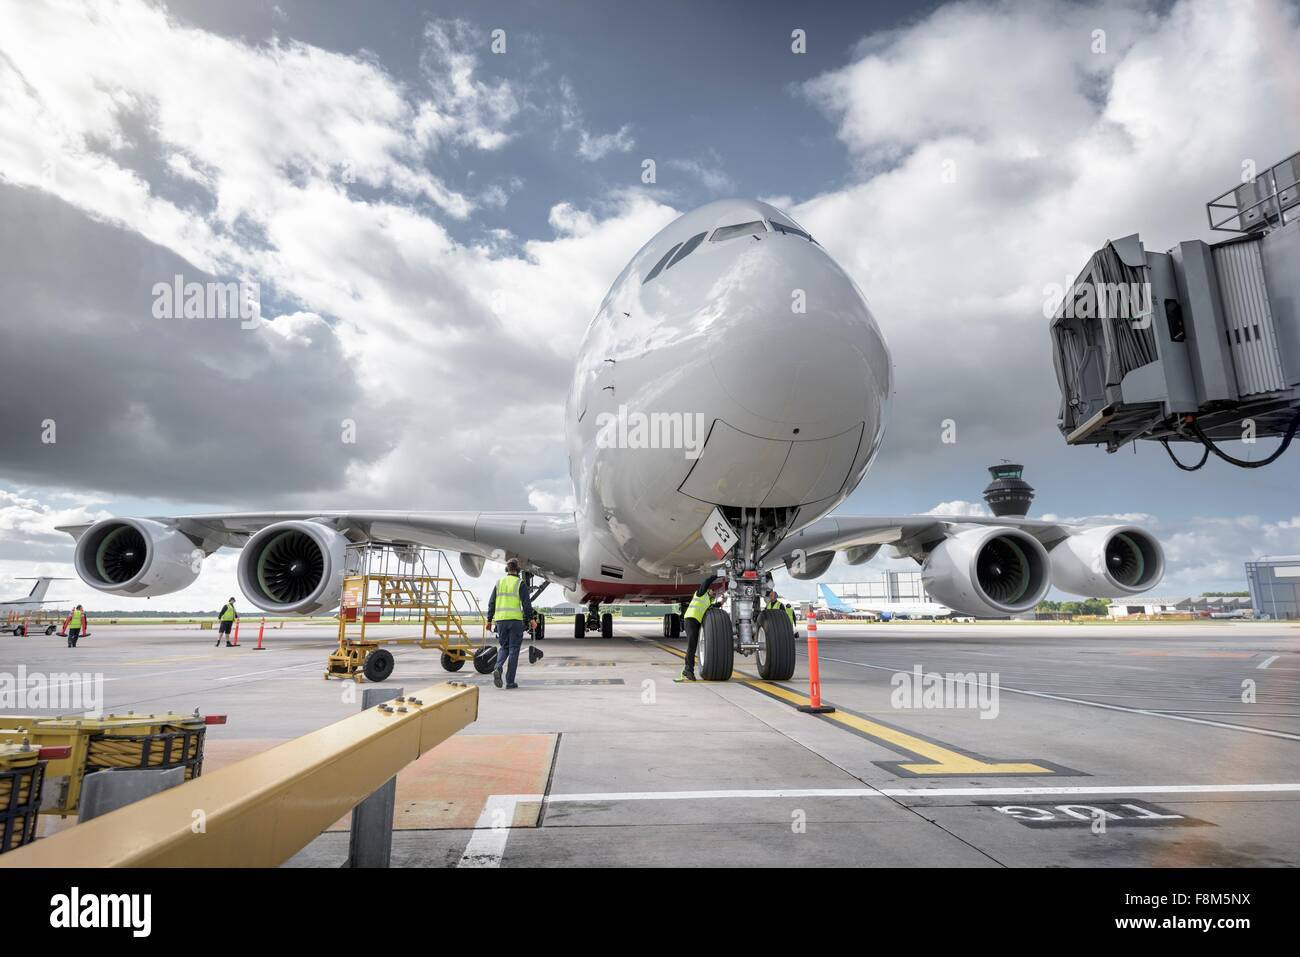 A380 Aircraft arriving at airport - Stock Image